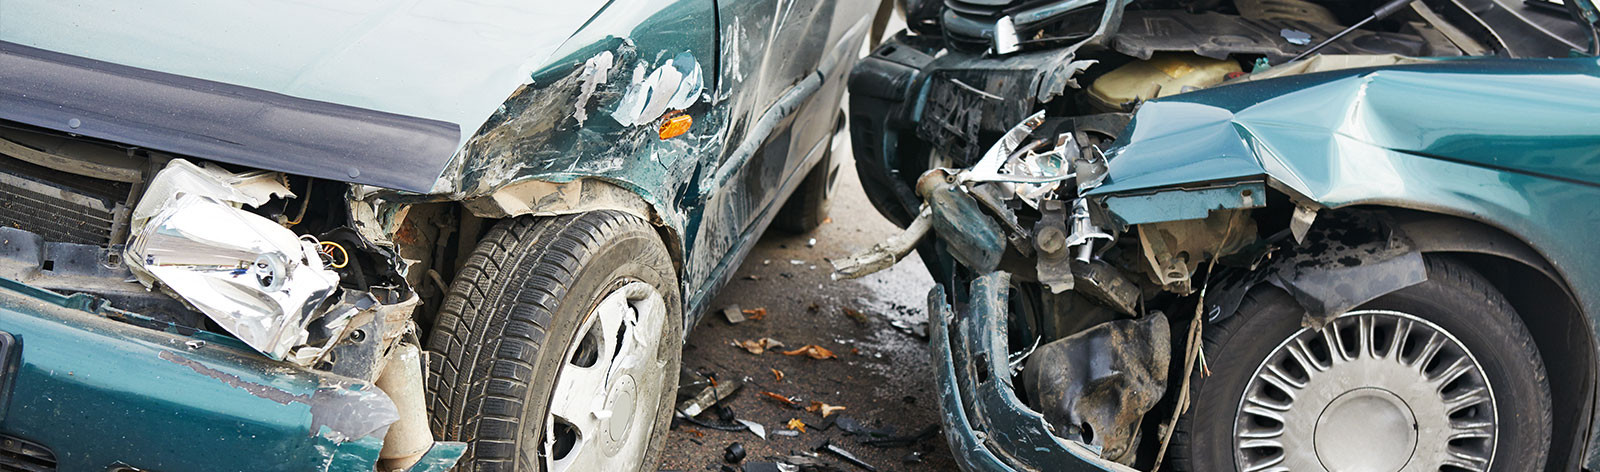 Houston Car Accident Lawyer | Sigmon Law PLLC |